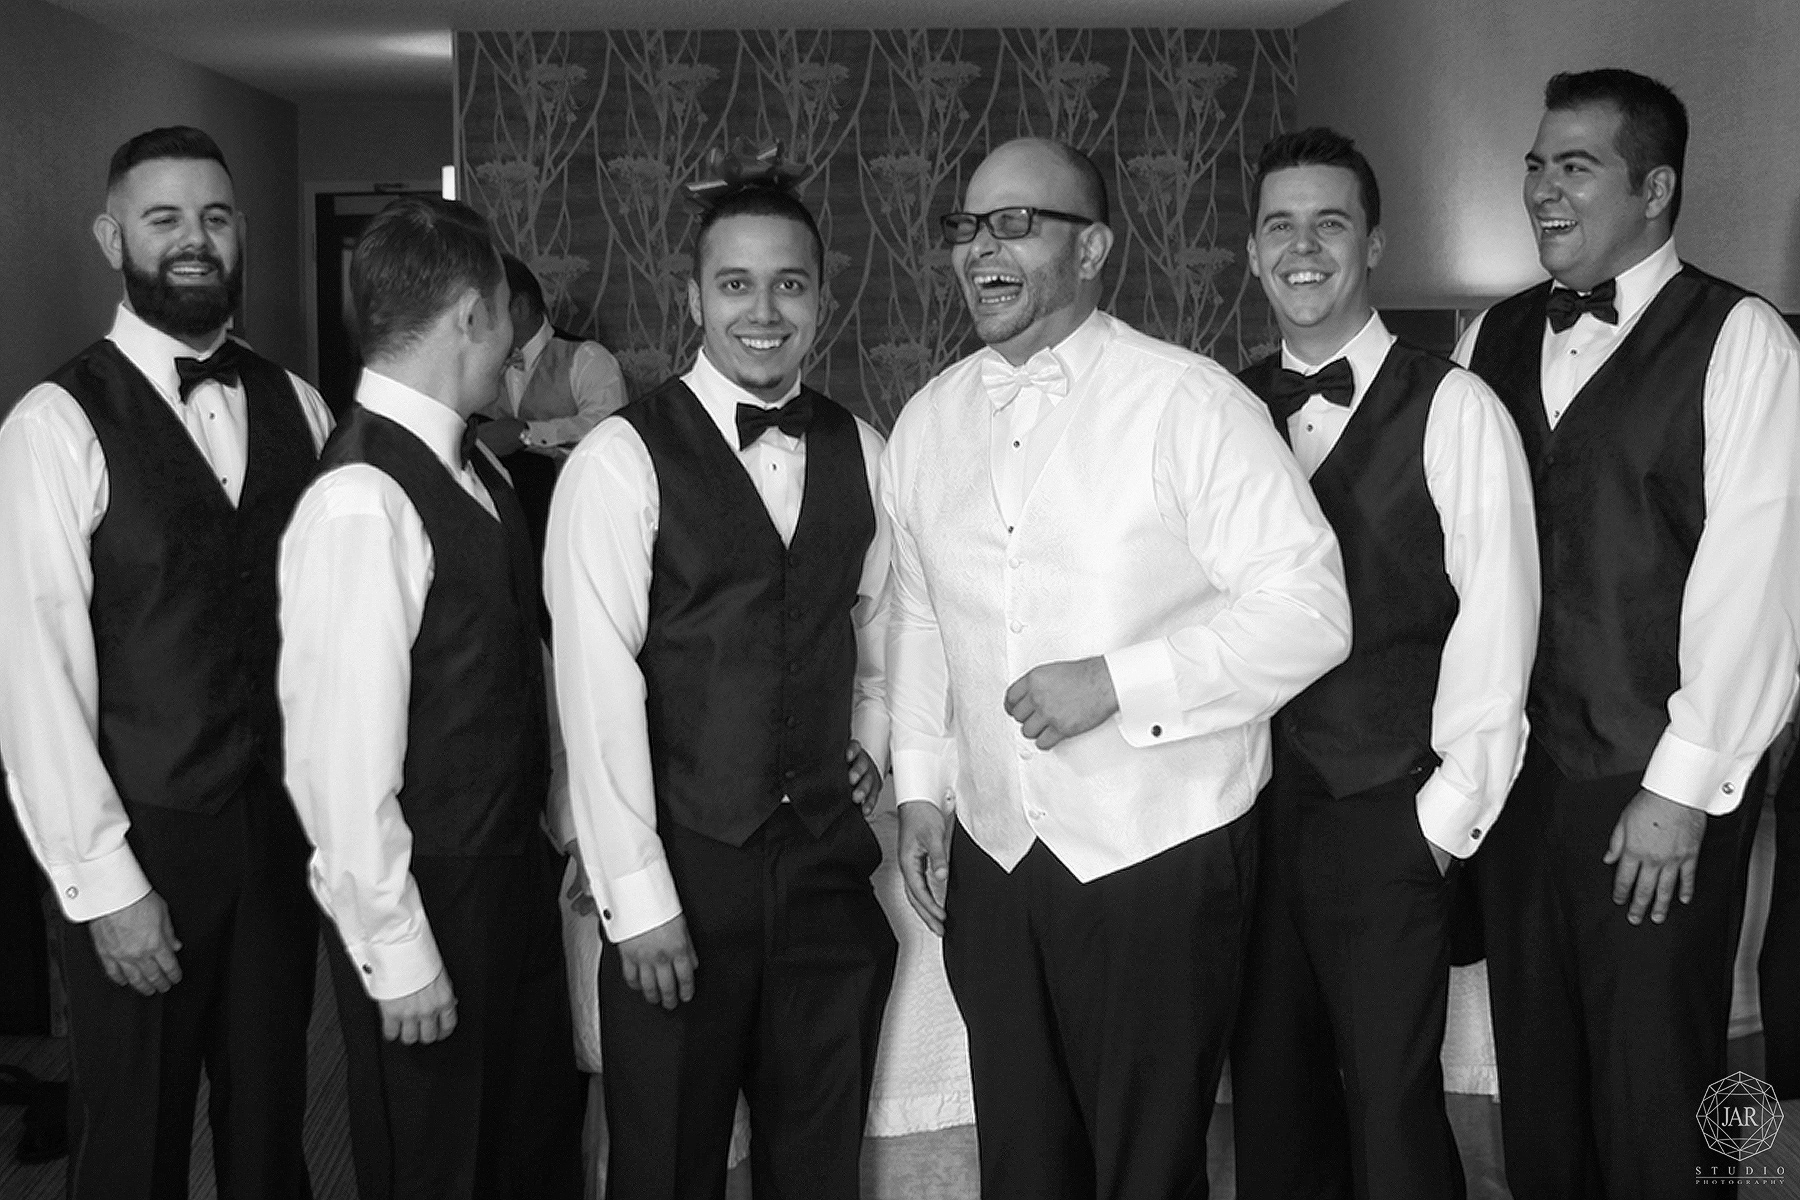 03-groom-getting-ready-fun-with-groomsmen-photographer-orlando.JPG